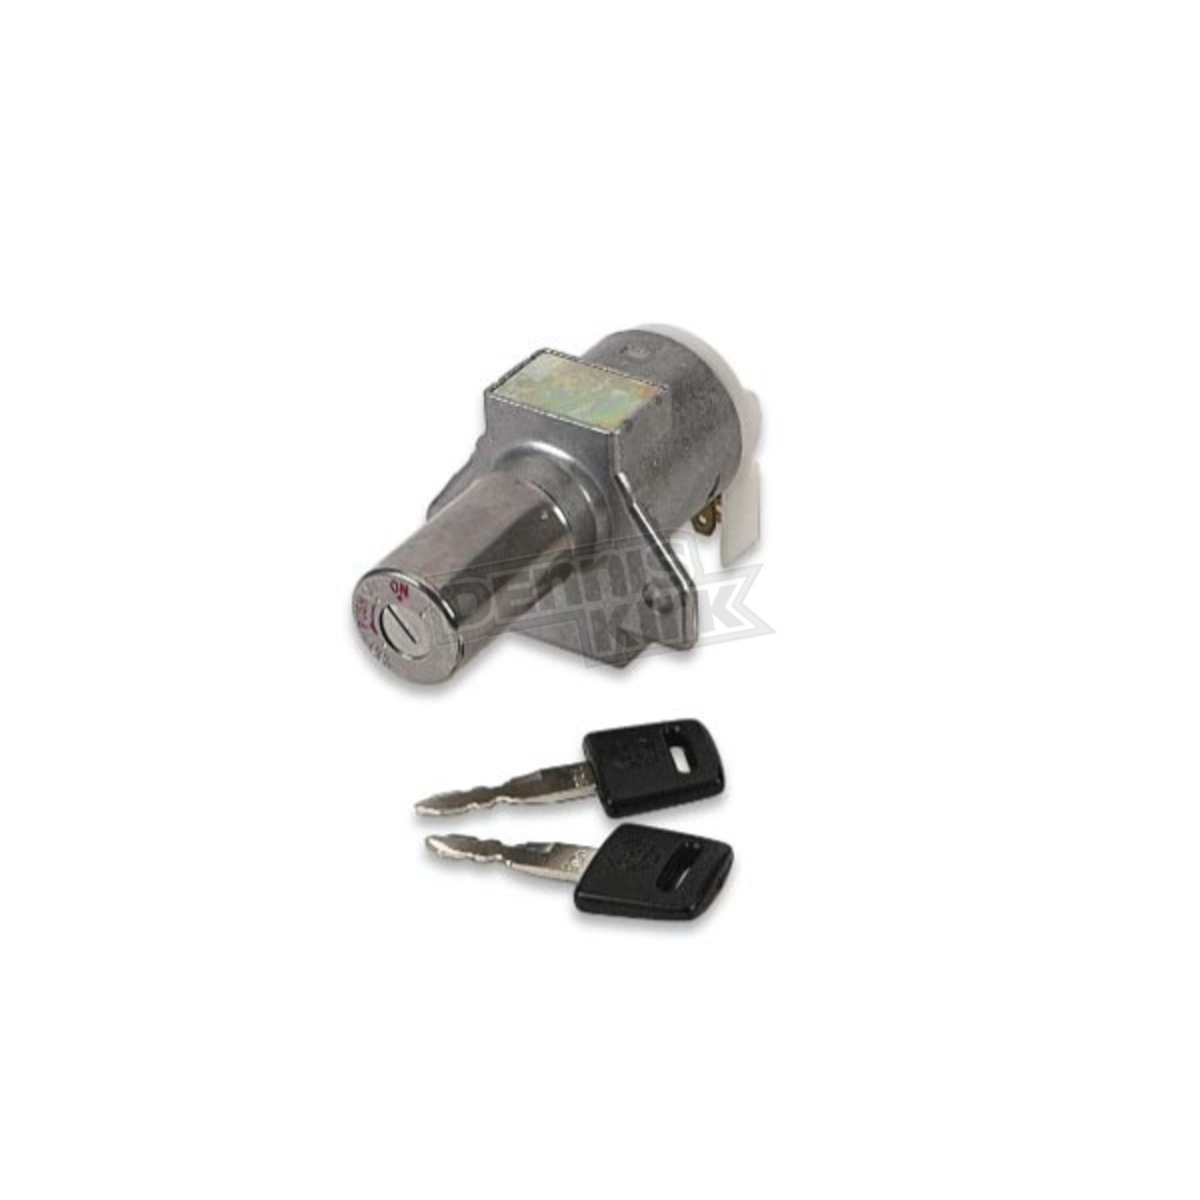 Emgo ignition switch 40 15820 cruiser motorcycle dennis kirk emgo ignition switch 40 15820 cheapraybanclubmaster